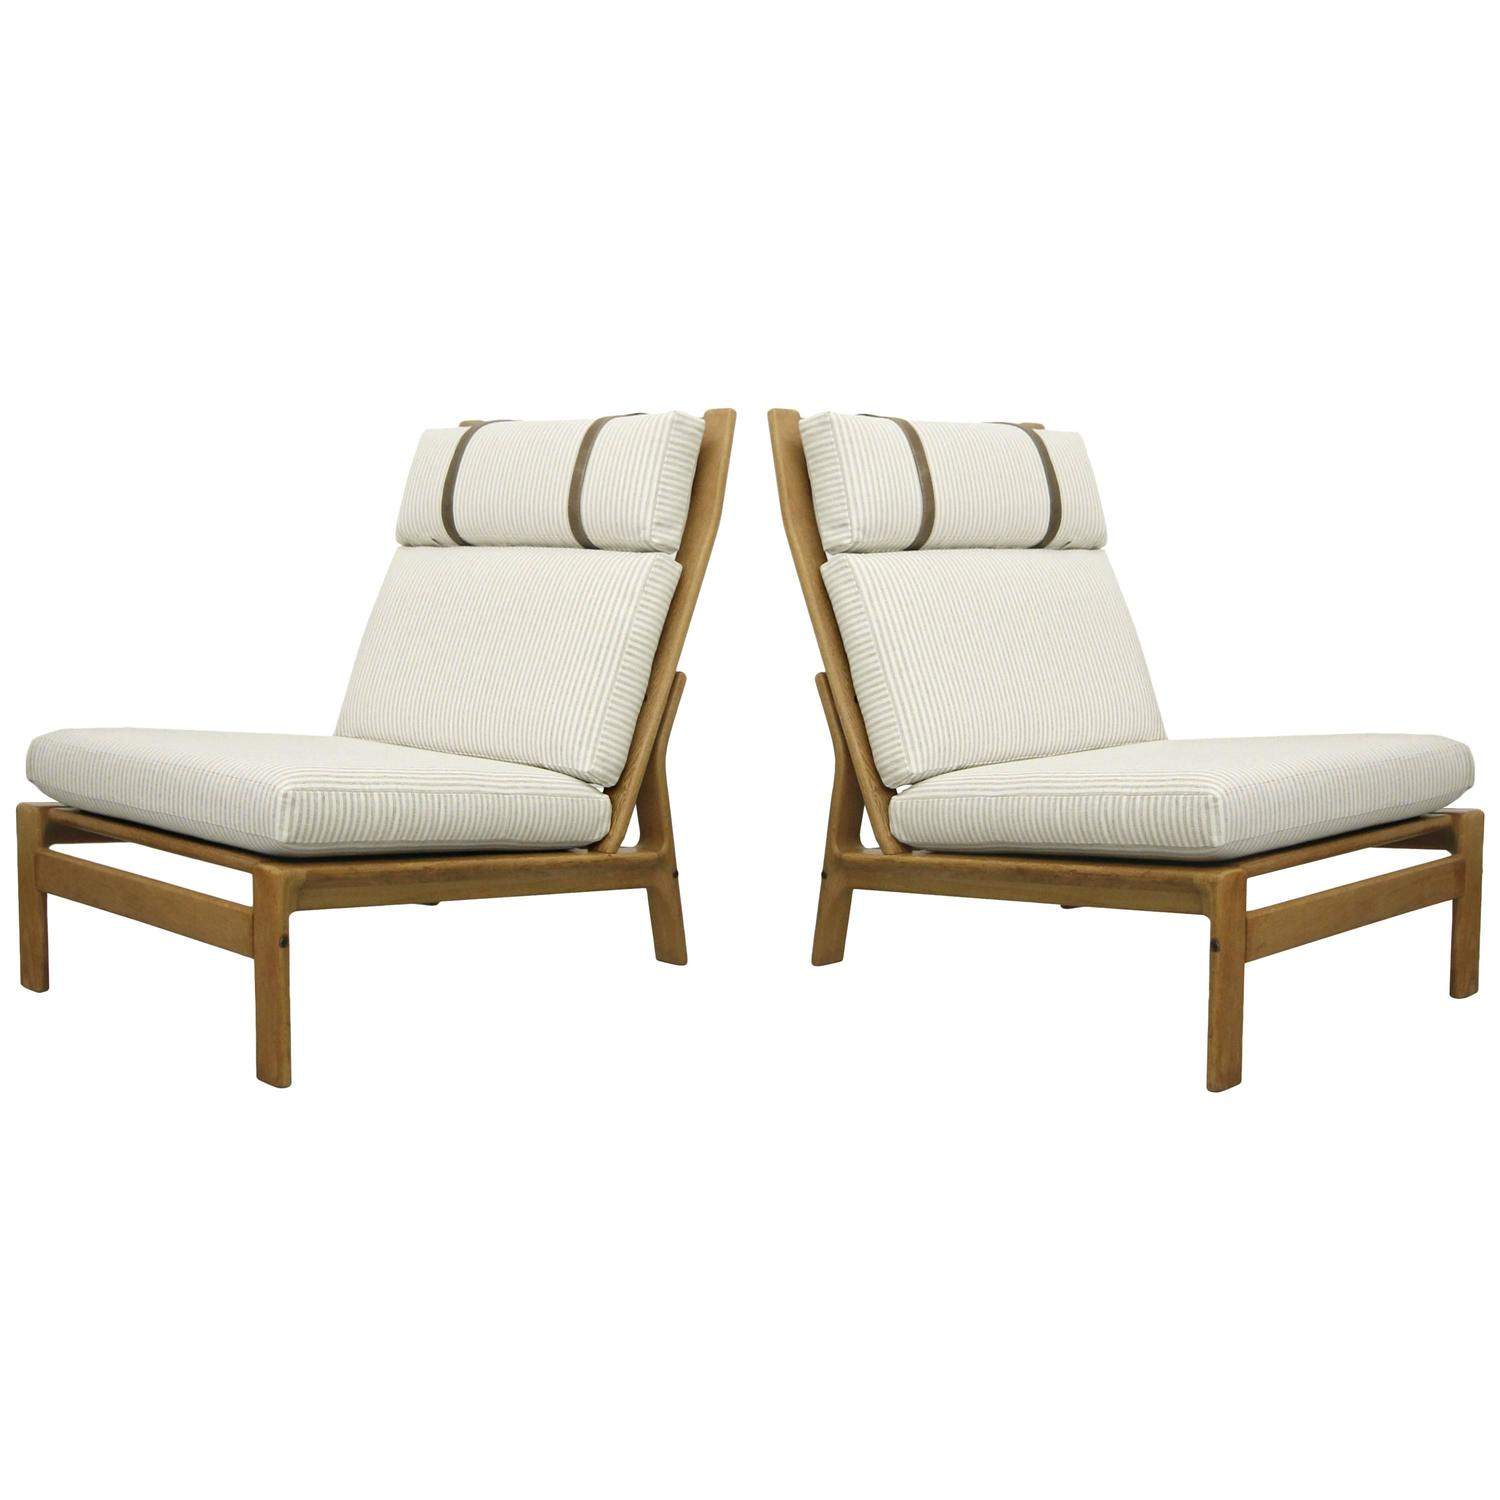 Pair of Oversized Danish Lounge Chairs by Komfort Design at 1stdibs